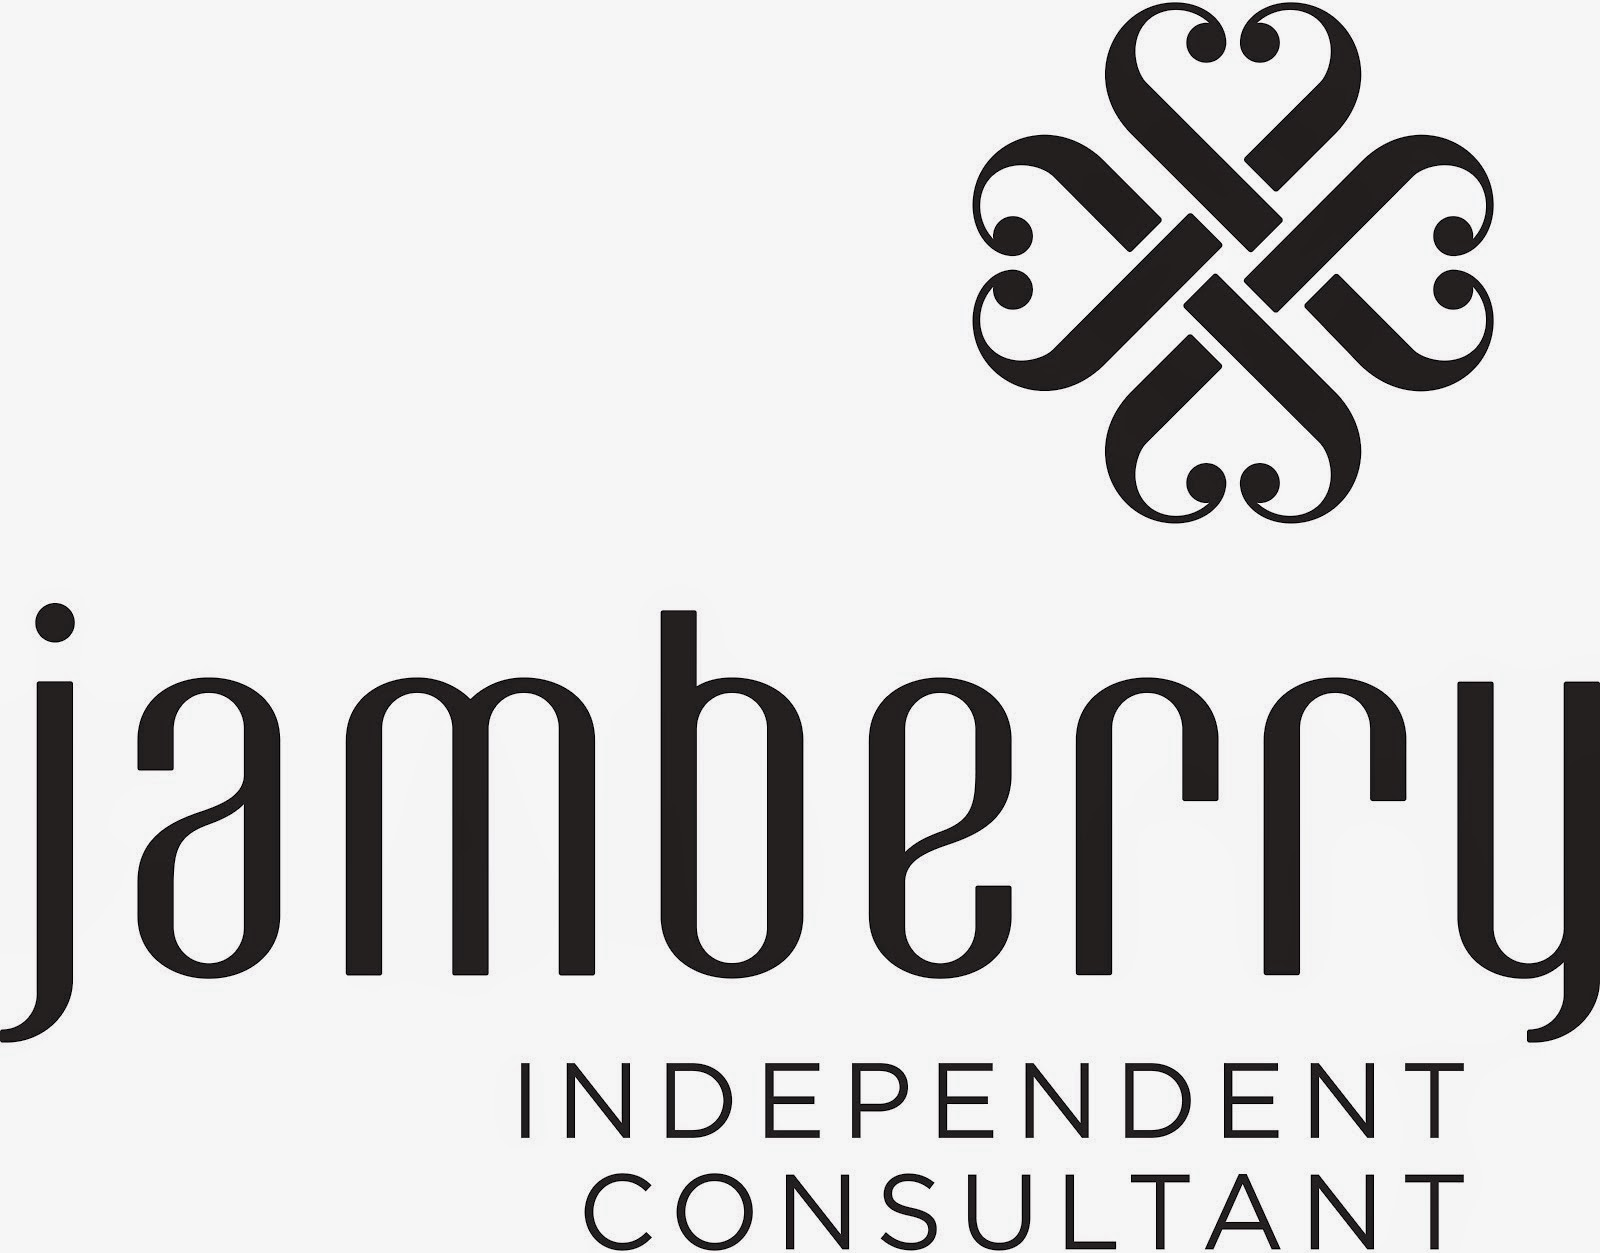 Jamberry Independent Consultant